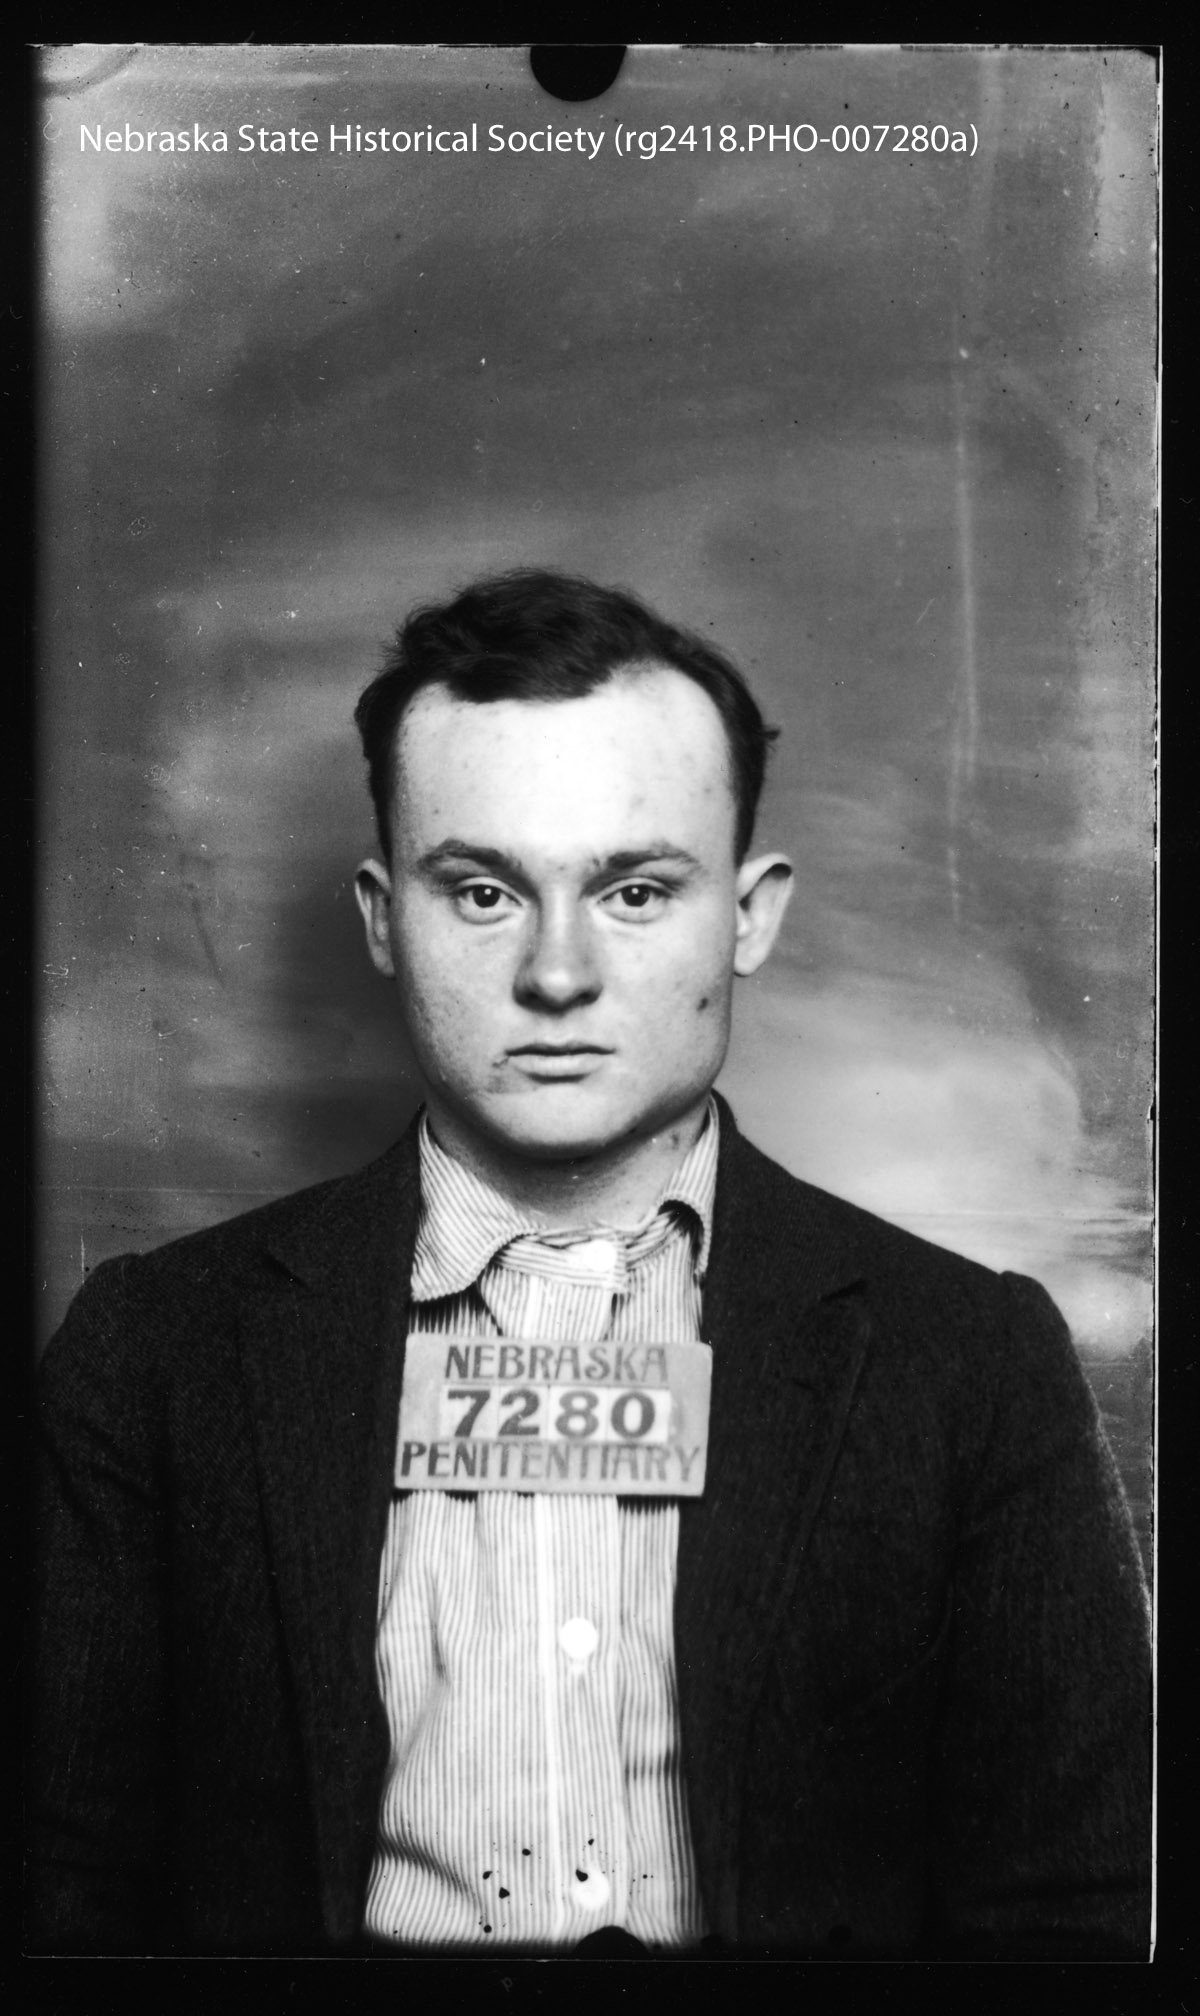 Prisoner #7280 was Louis Chobar (aka Lee Vaugh) he was conviced of murder in York County and sentenced to life.